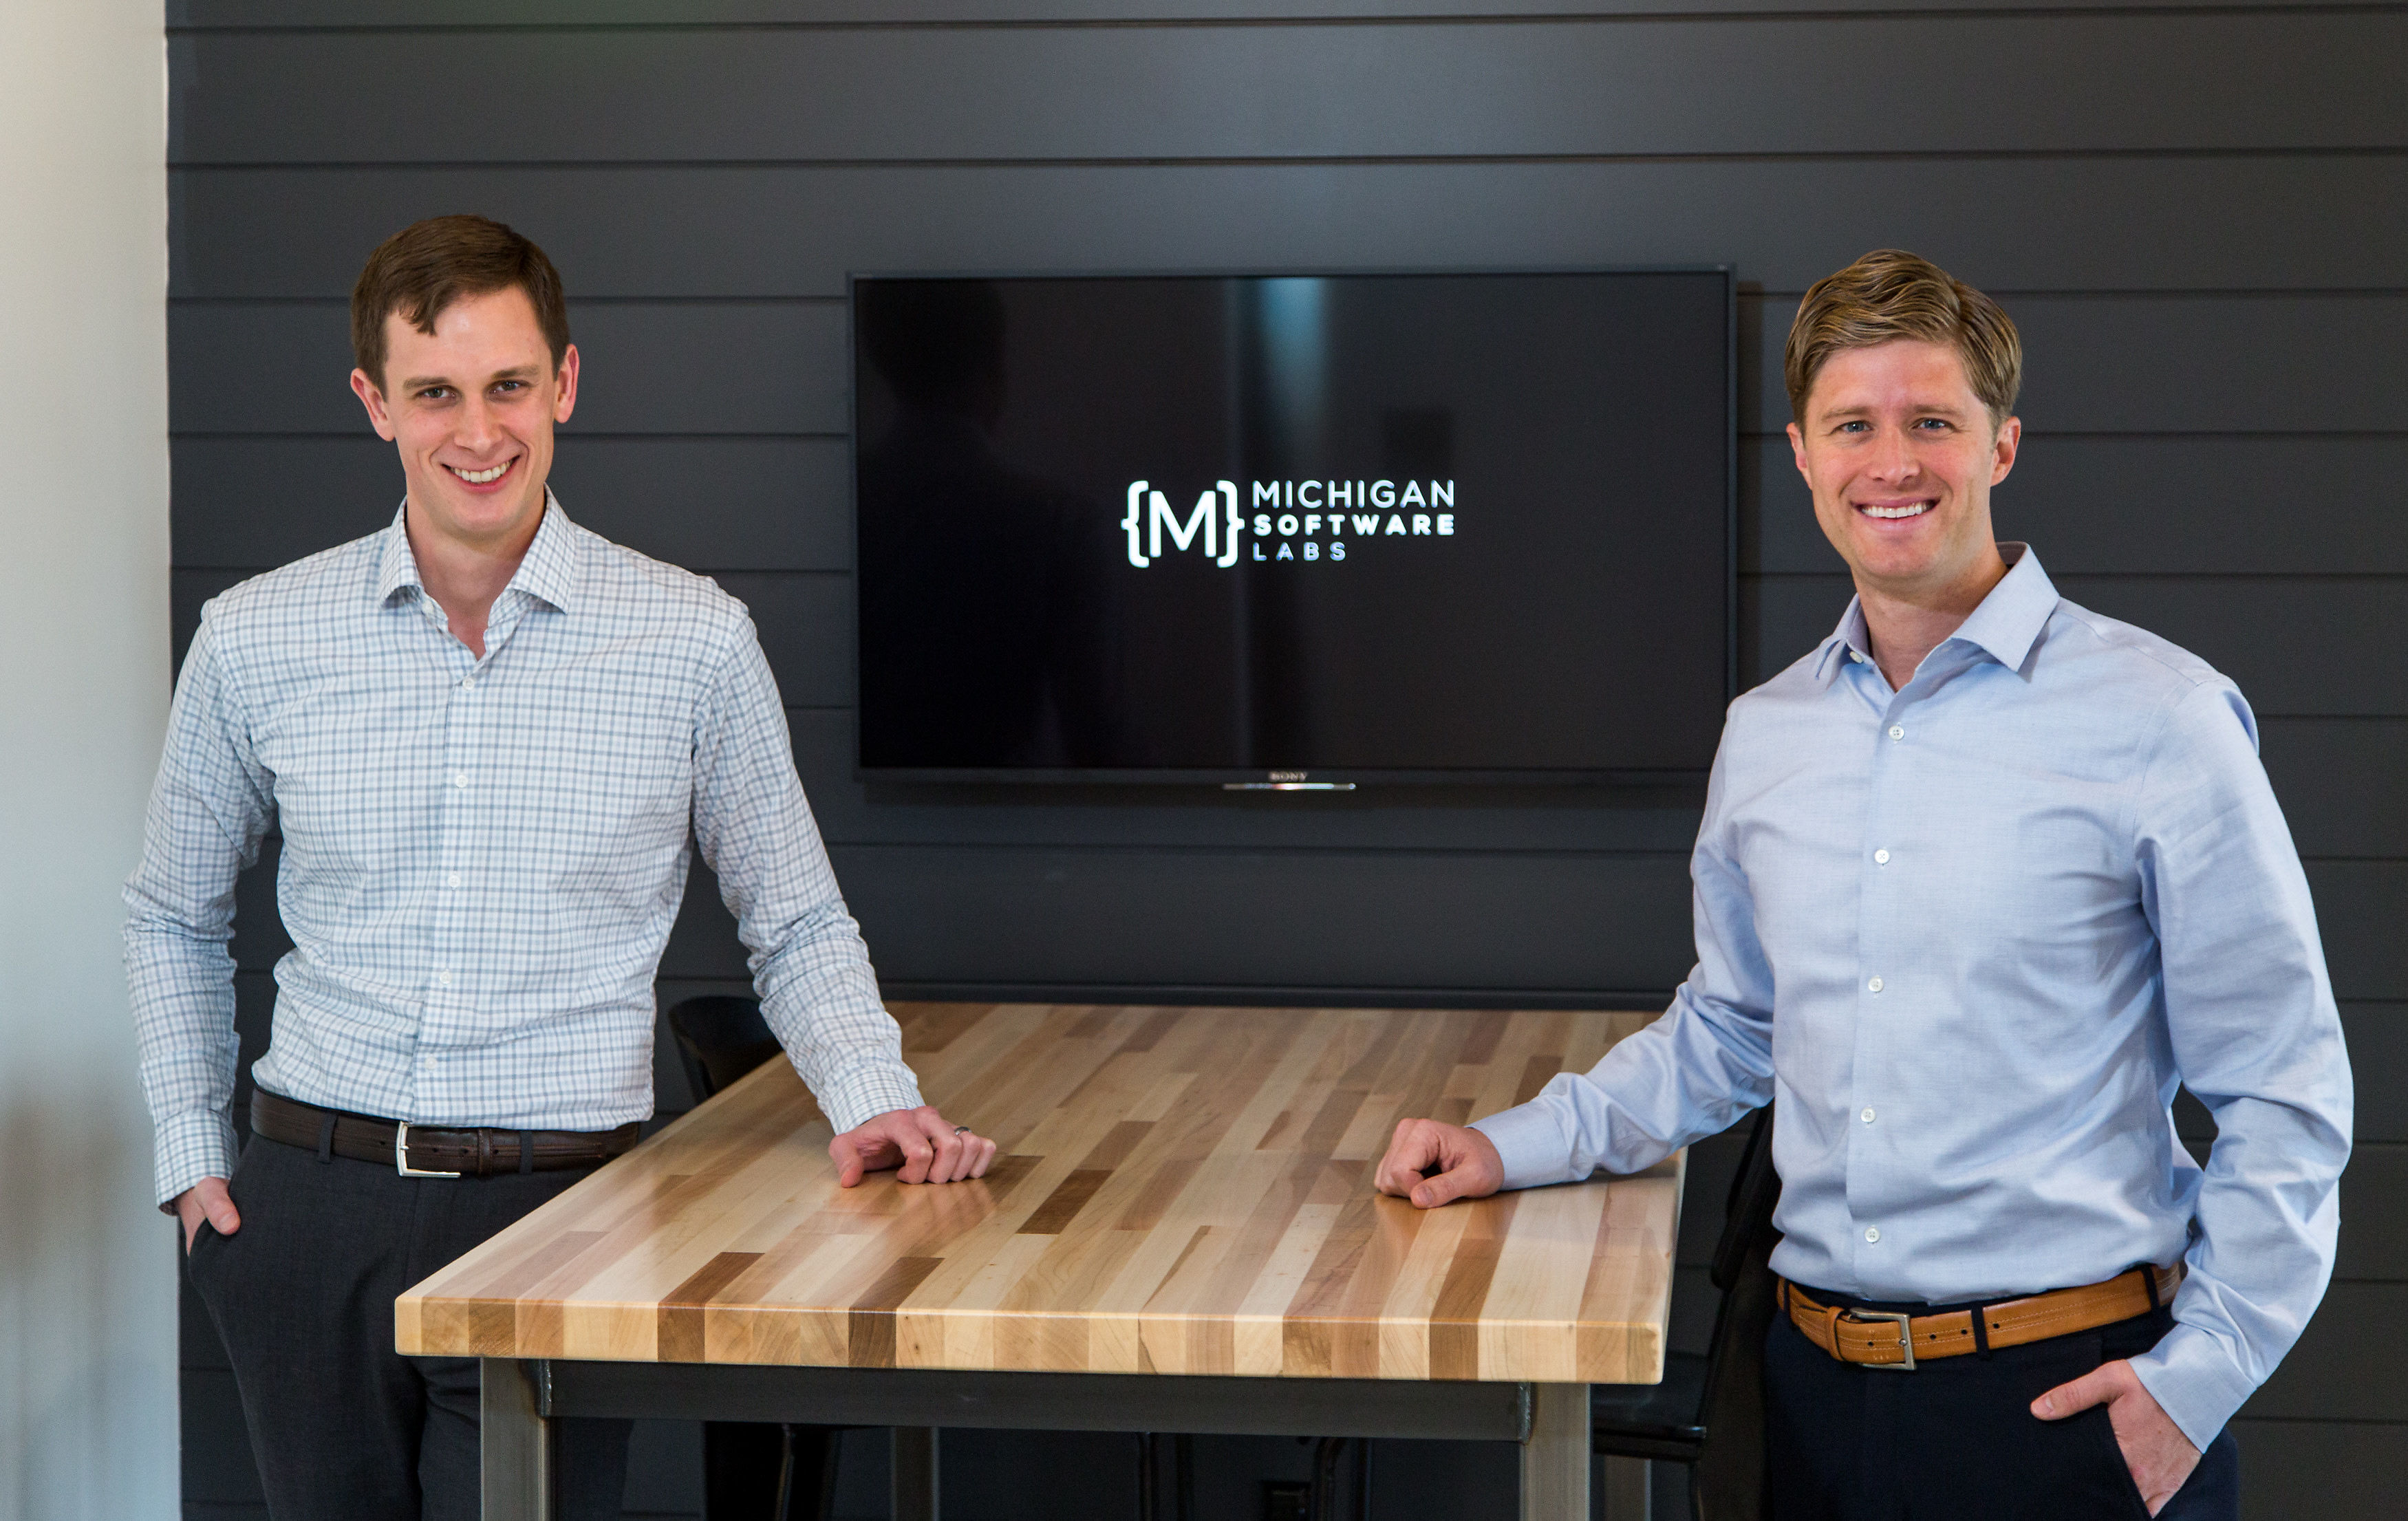 MSL co founders Josh Hulst and Mark Johnson